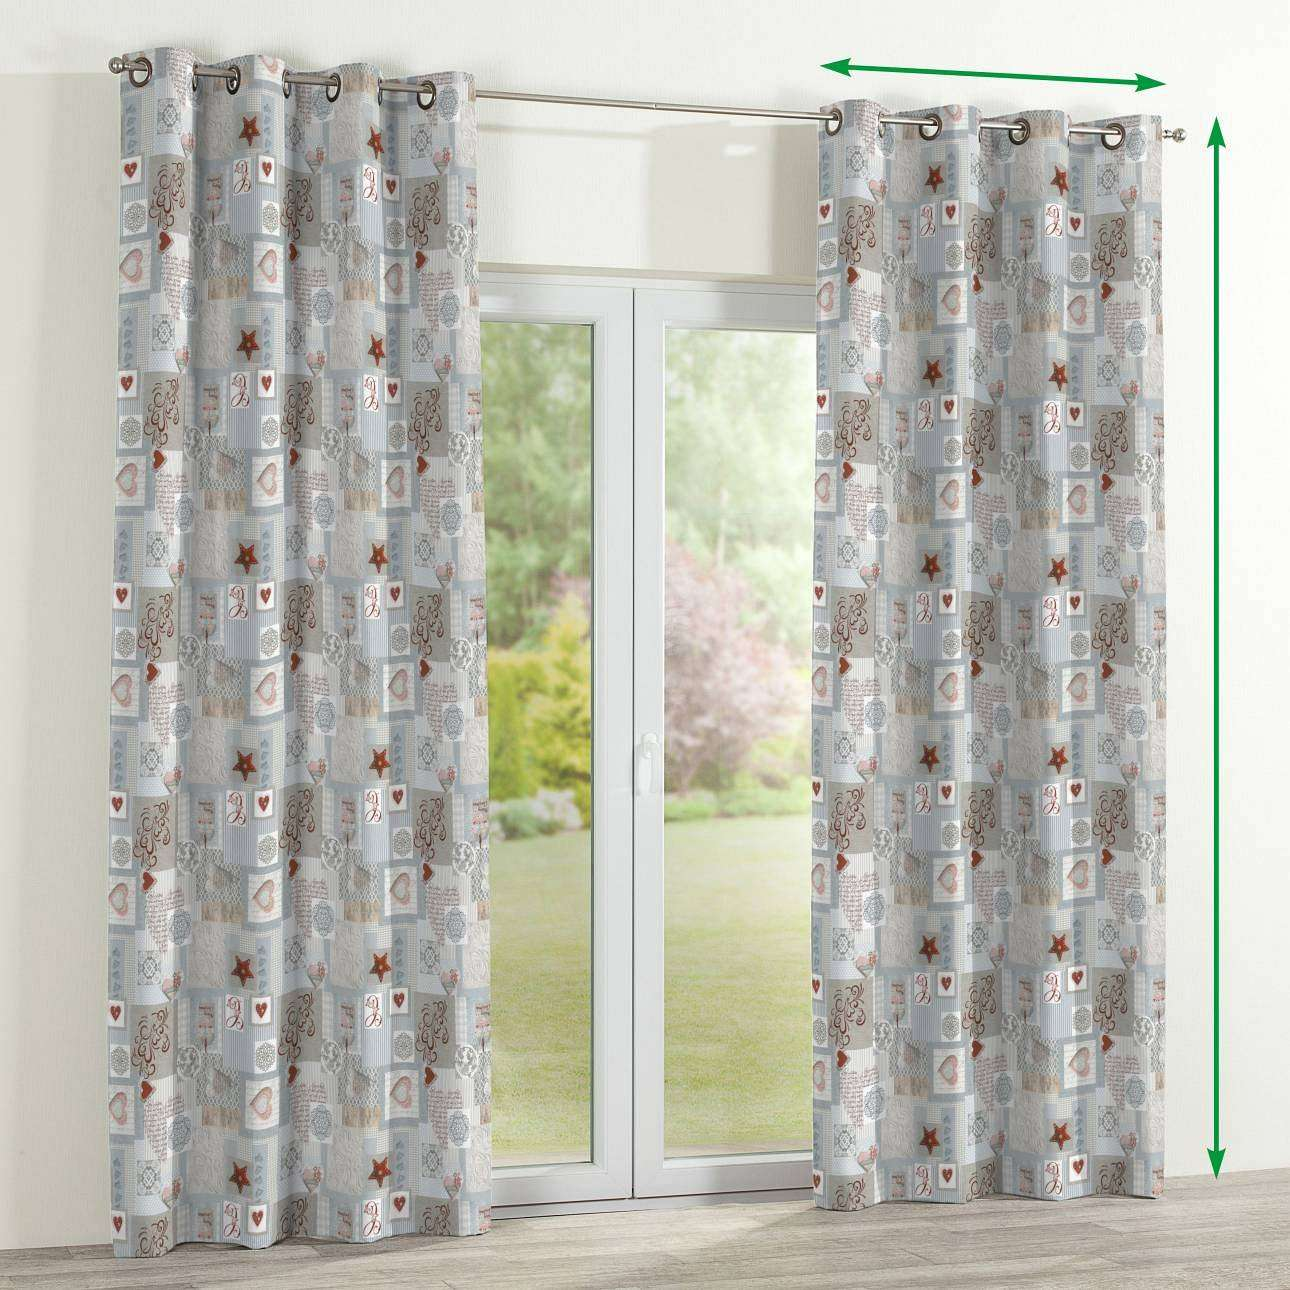 Eyelet curtains in collection Christmas , fabric: 629-27